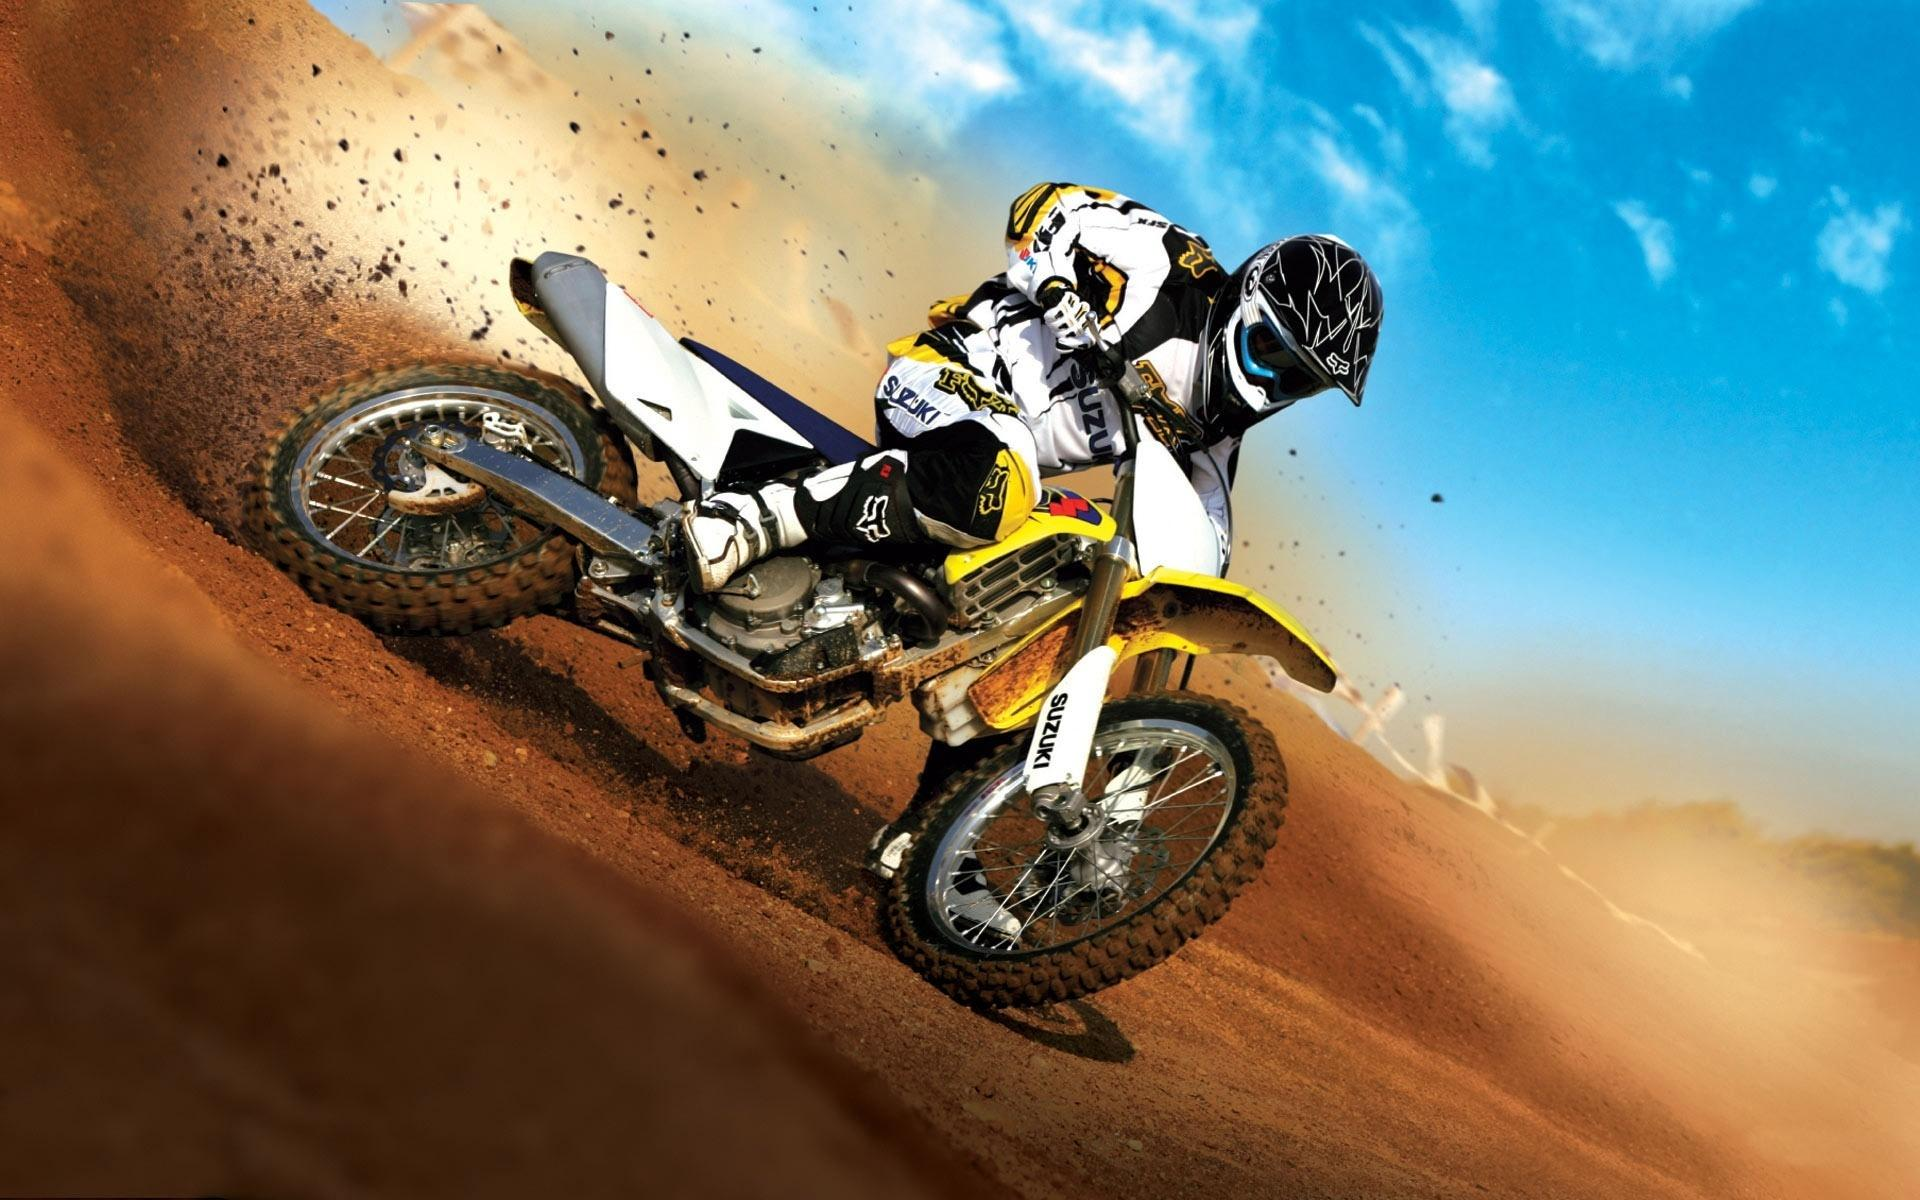 Image Super Dirt Bike Wallpapers And Stock Photos